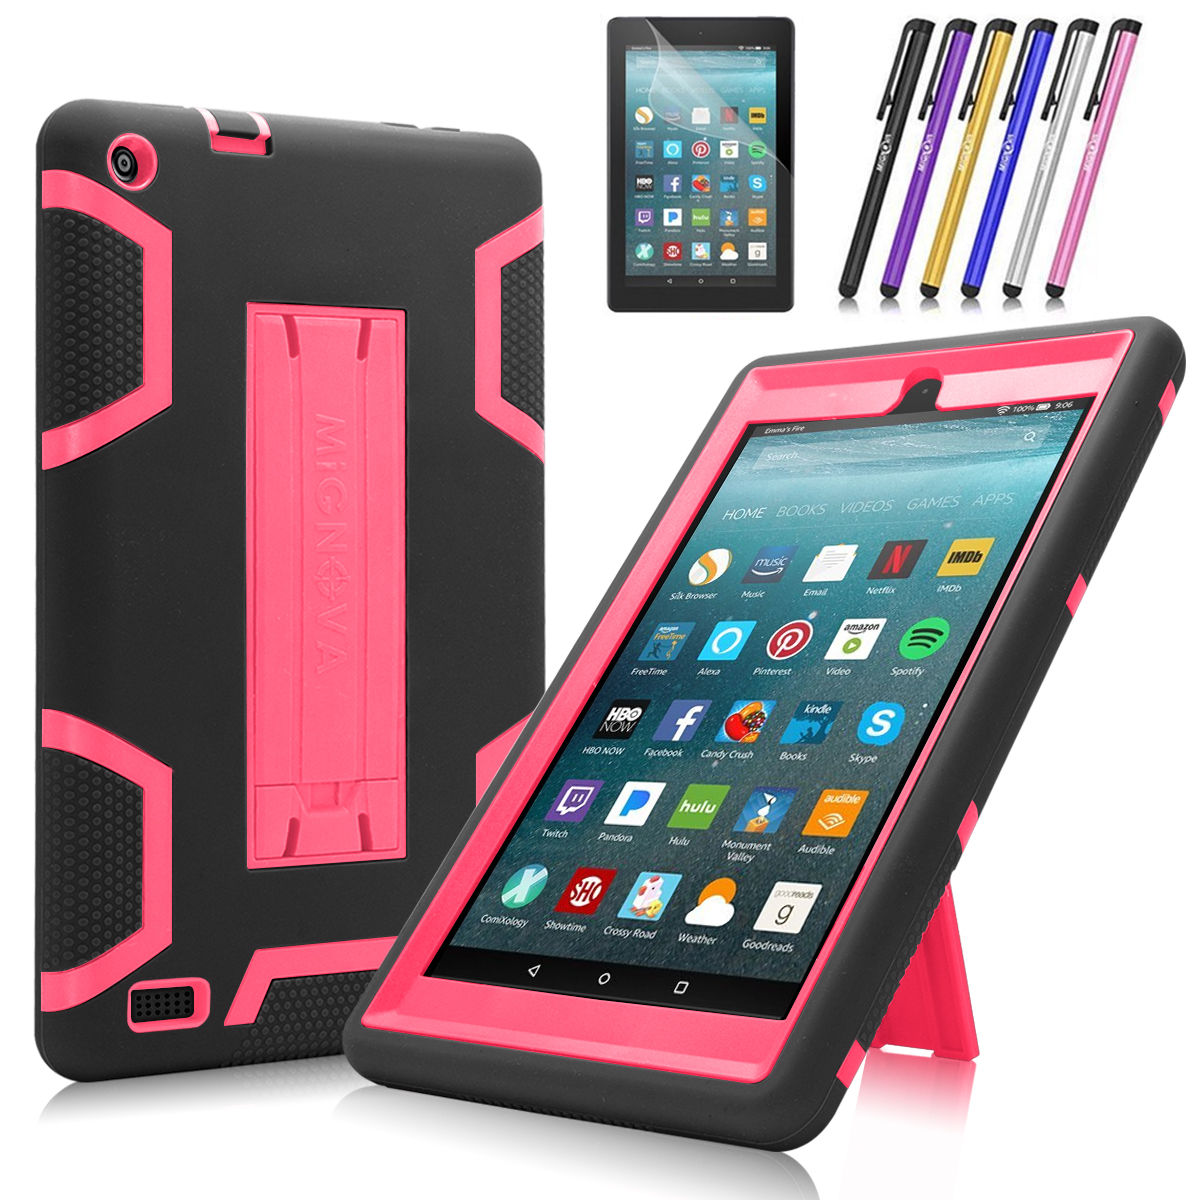 Fire 7 2017 Case, Mignova Heavy Duty Hybrid Protective Case Build In Kickstand For All-New Fire 7 Tablet (7th Generation 2017 Release) + Screen Protector Film and Stylus Pen (Black / Pink)